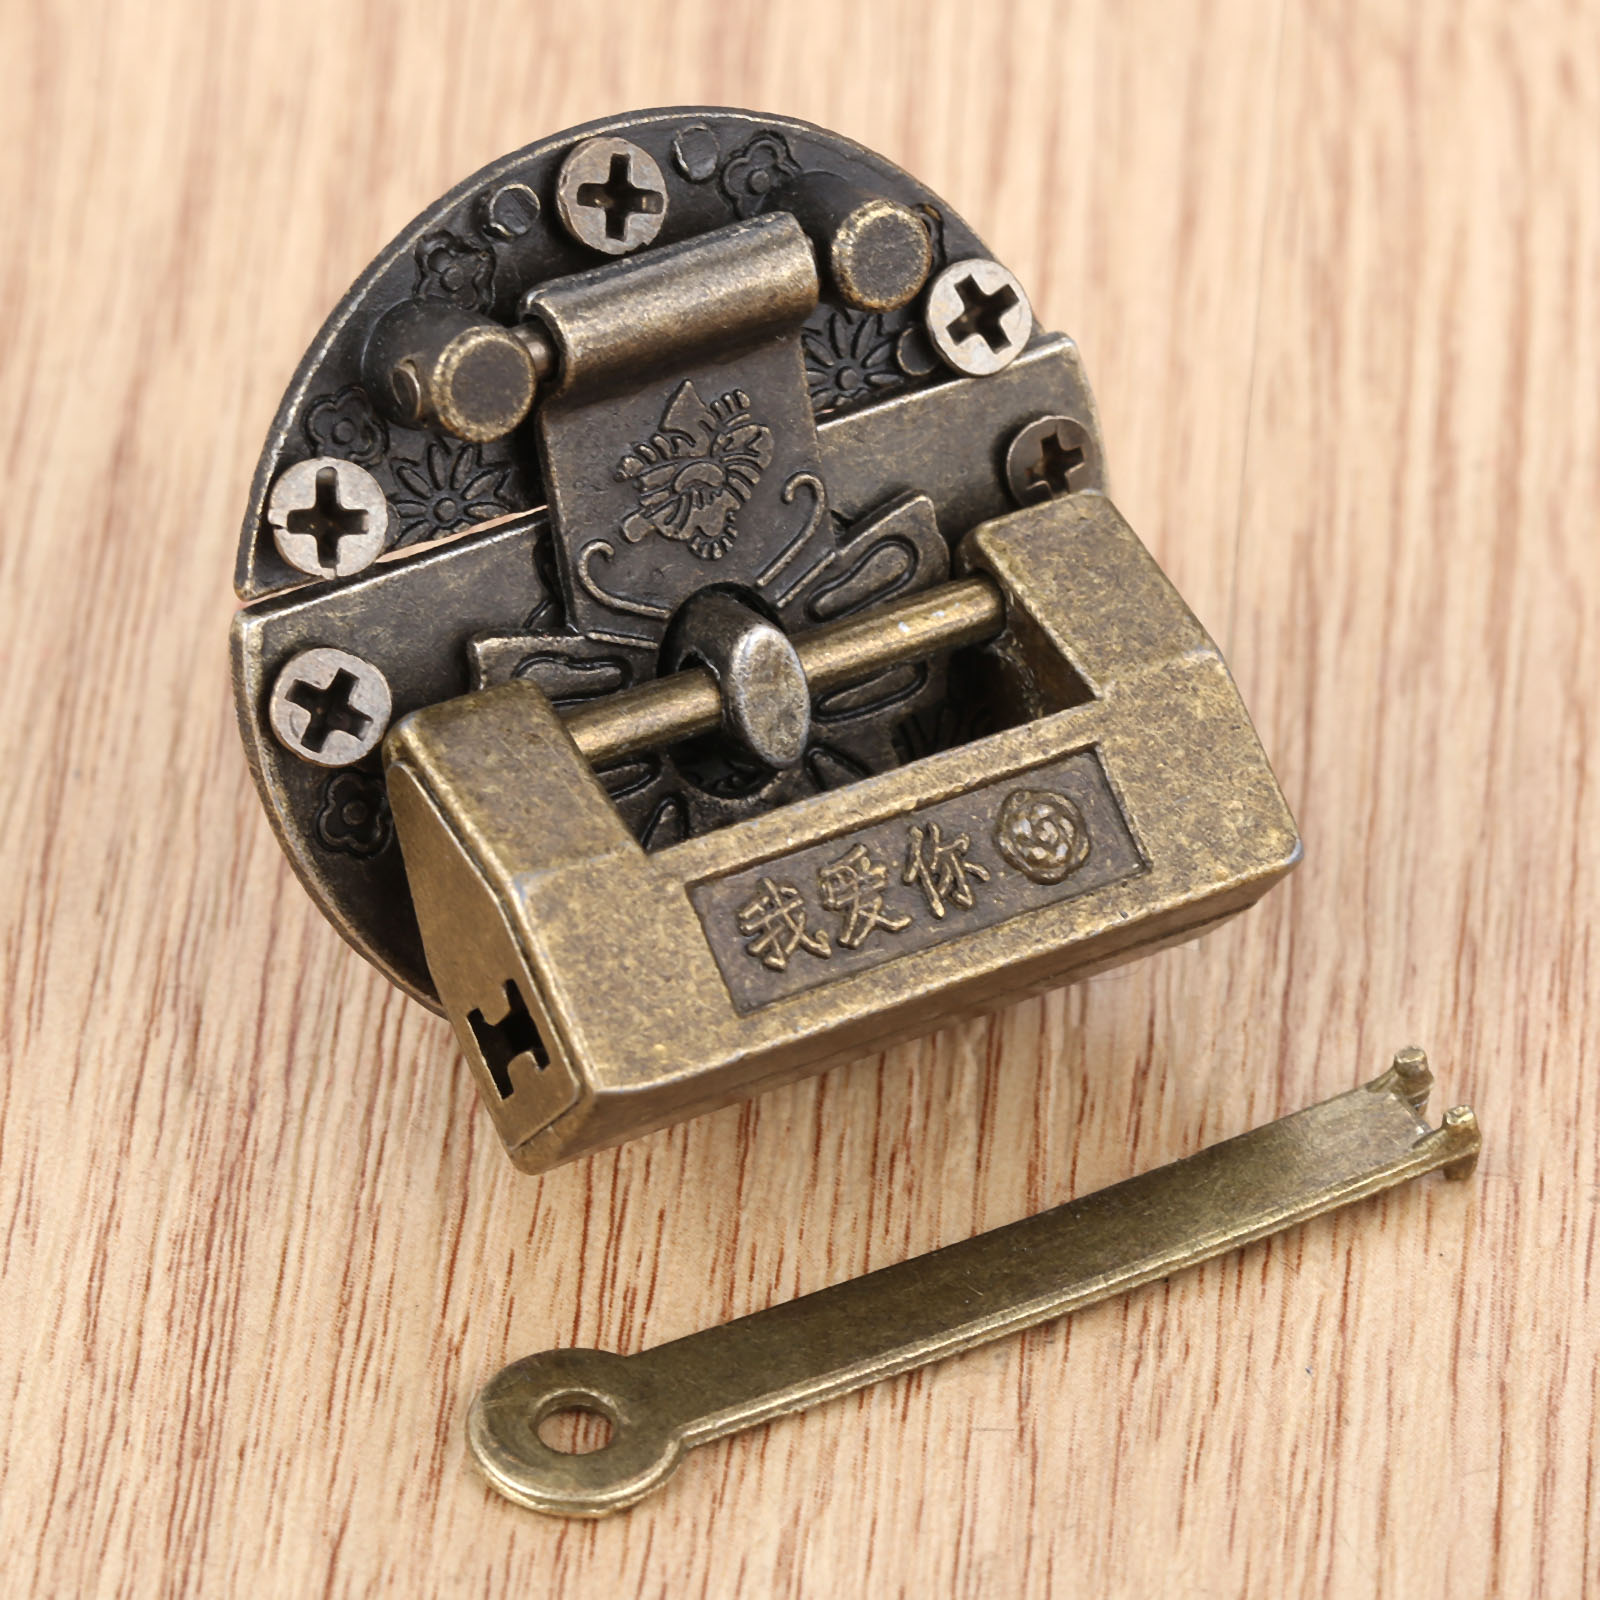 2Pcs Vintage Antique Iron Jewelry Wooden Box Padlock Chinese Old Brass Padlock For Suitcase Drawer Cabinet Key 33*18mm